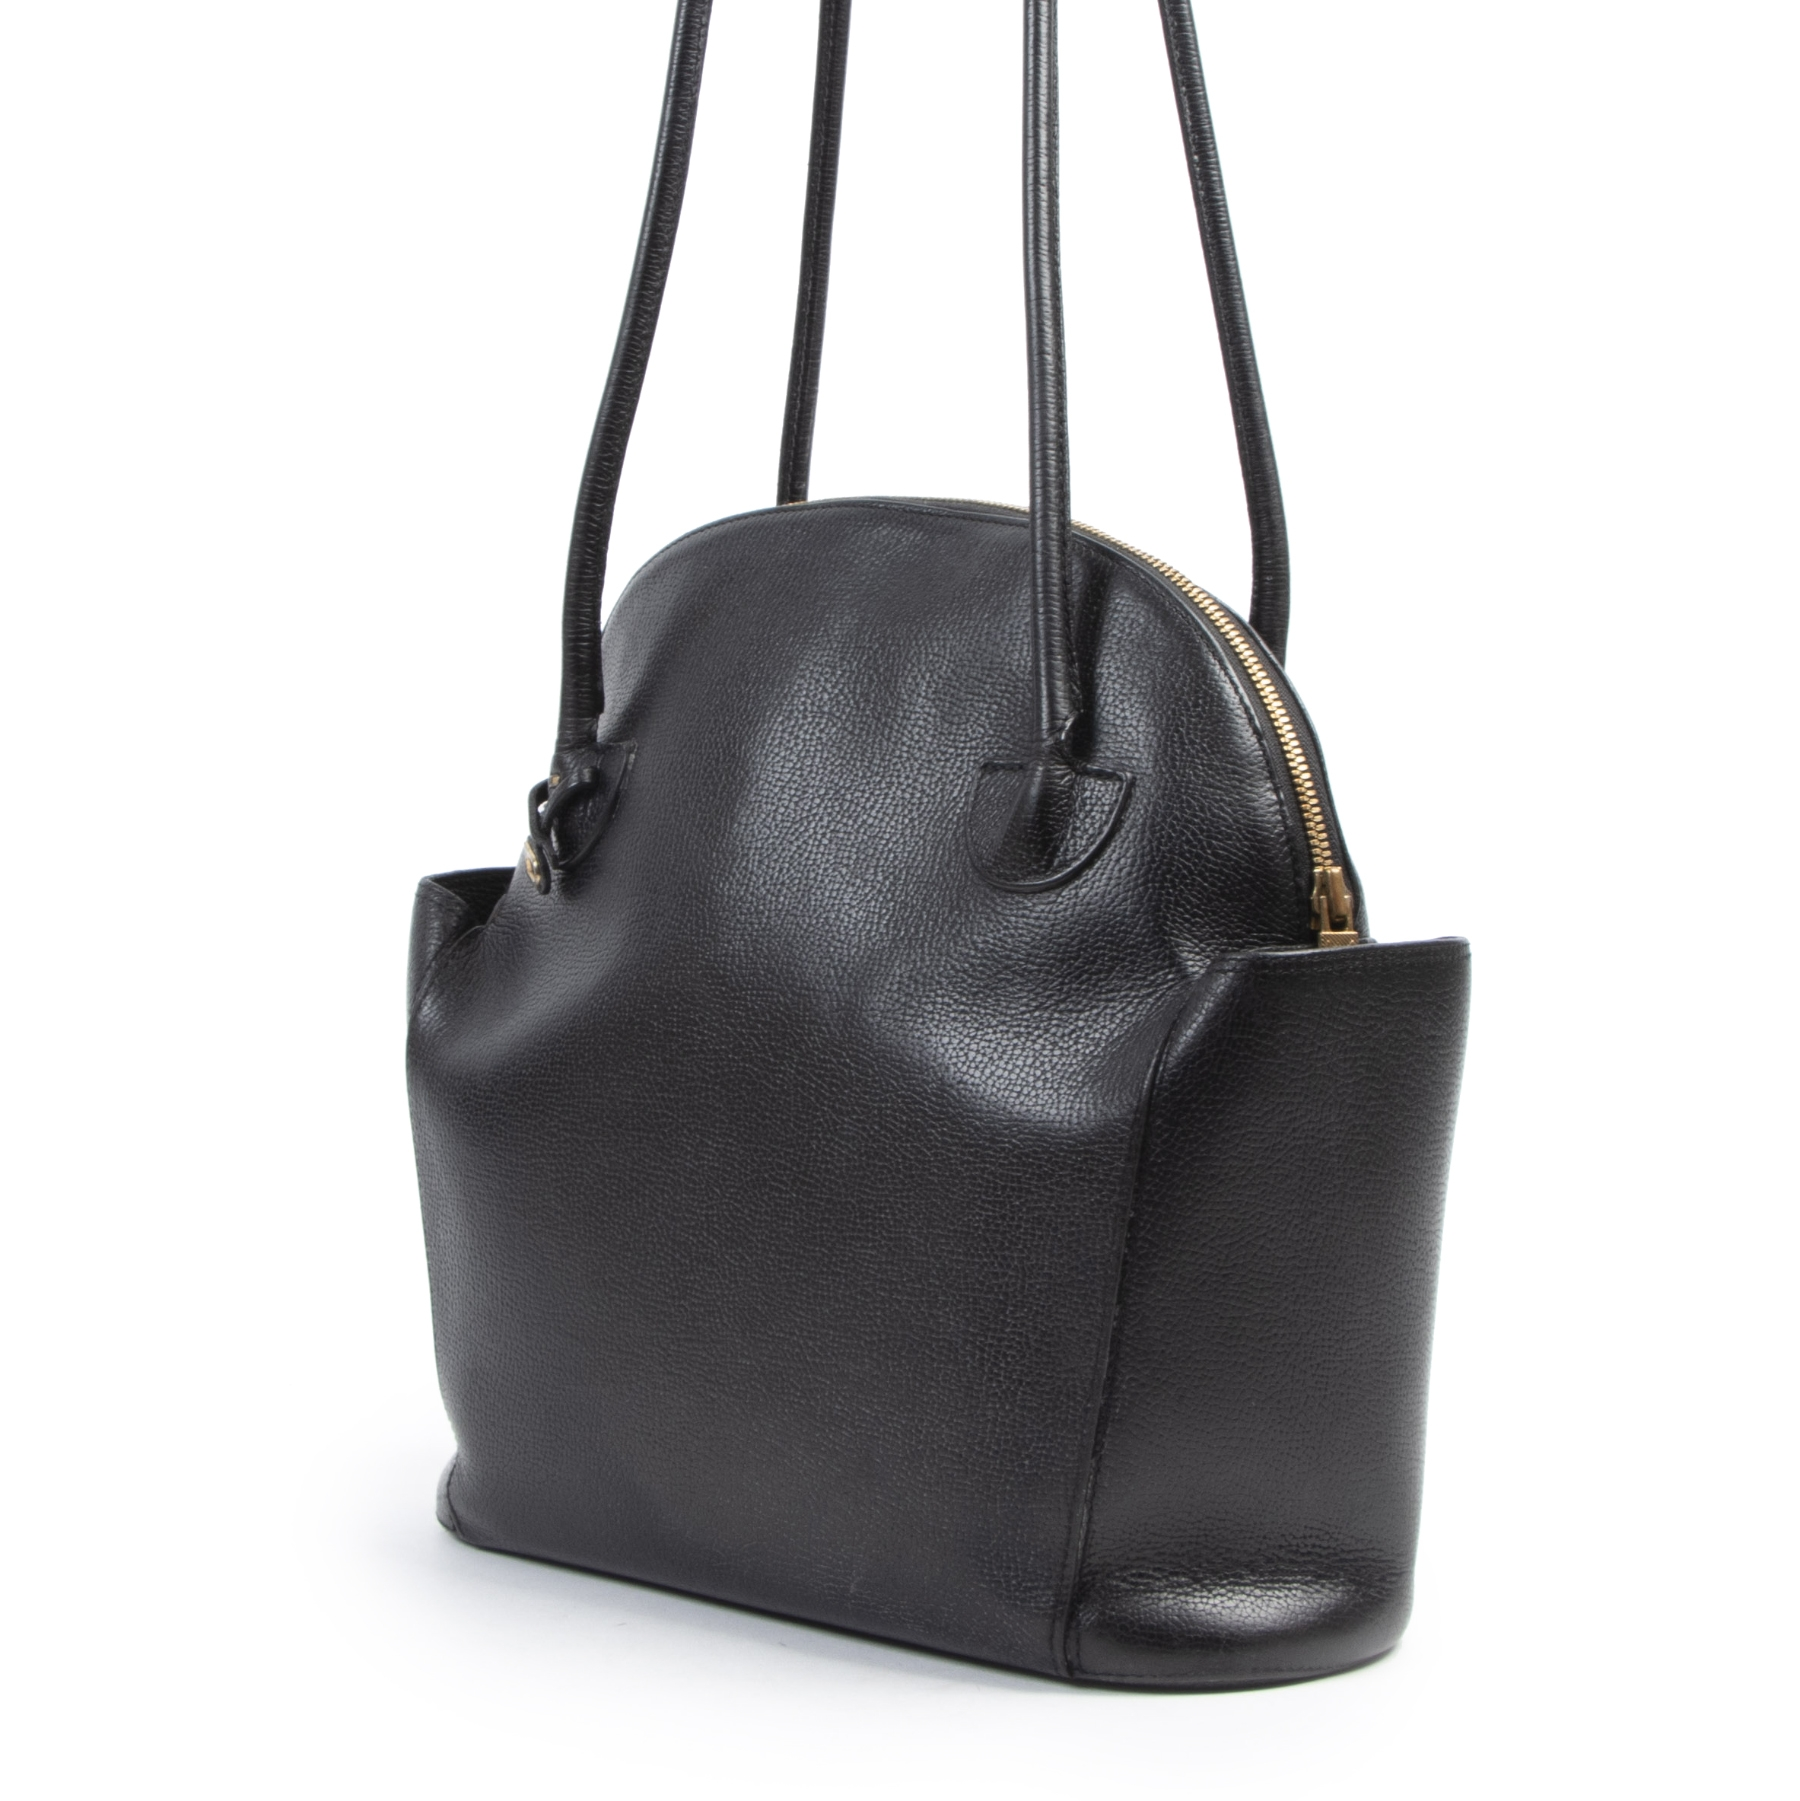 Buy authentic secondhand Delvaux Mousson Black Leather Shoulder Bag at the right price at LabelLOV. Safe and secure online shopping. Koop authentieke tweedehands met de juiste prijs bij LabelLOV. Authentique s